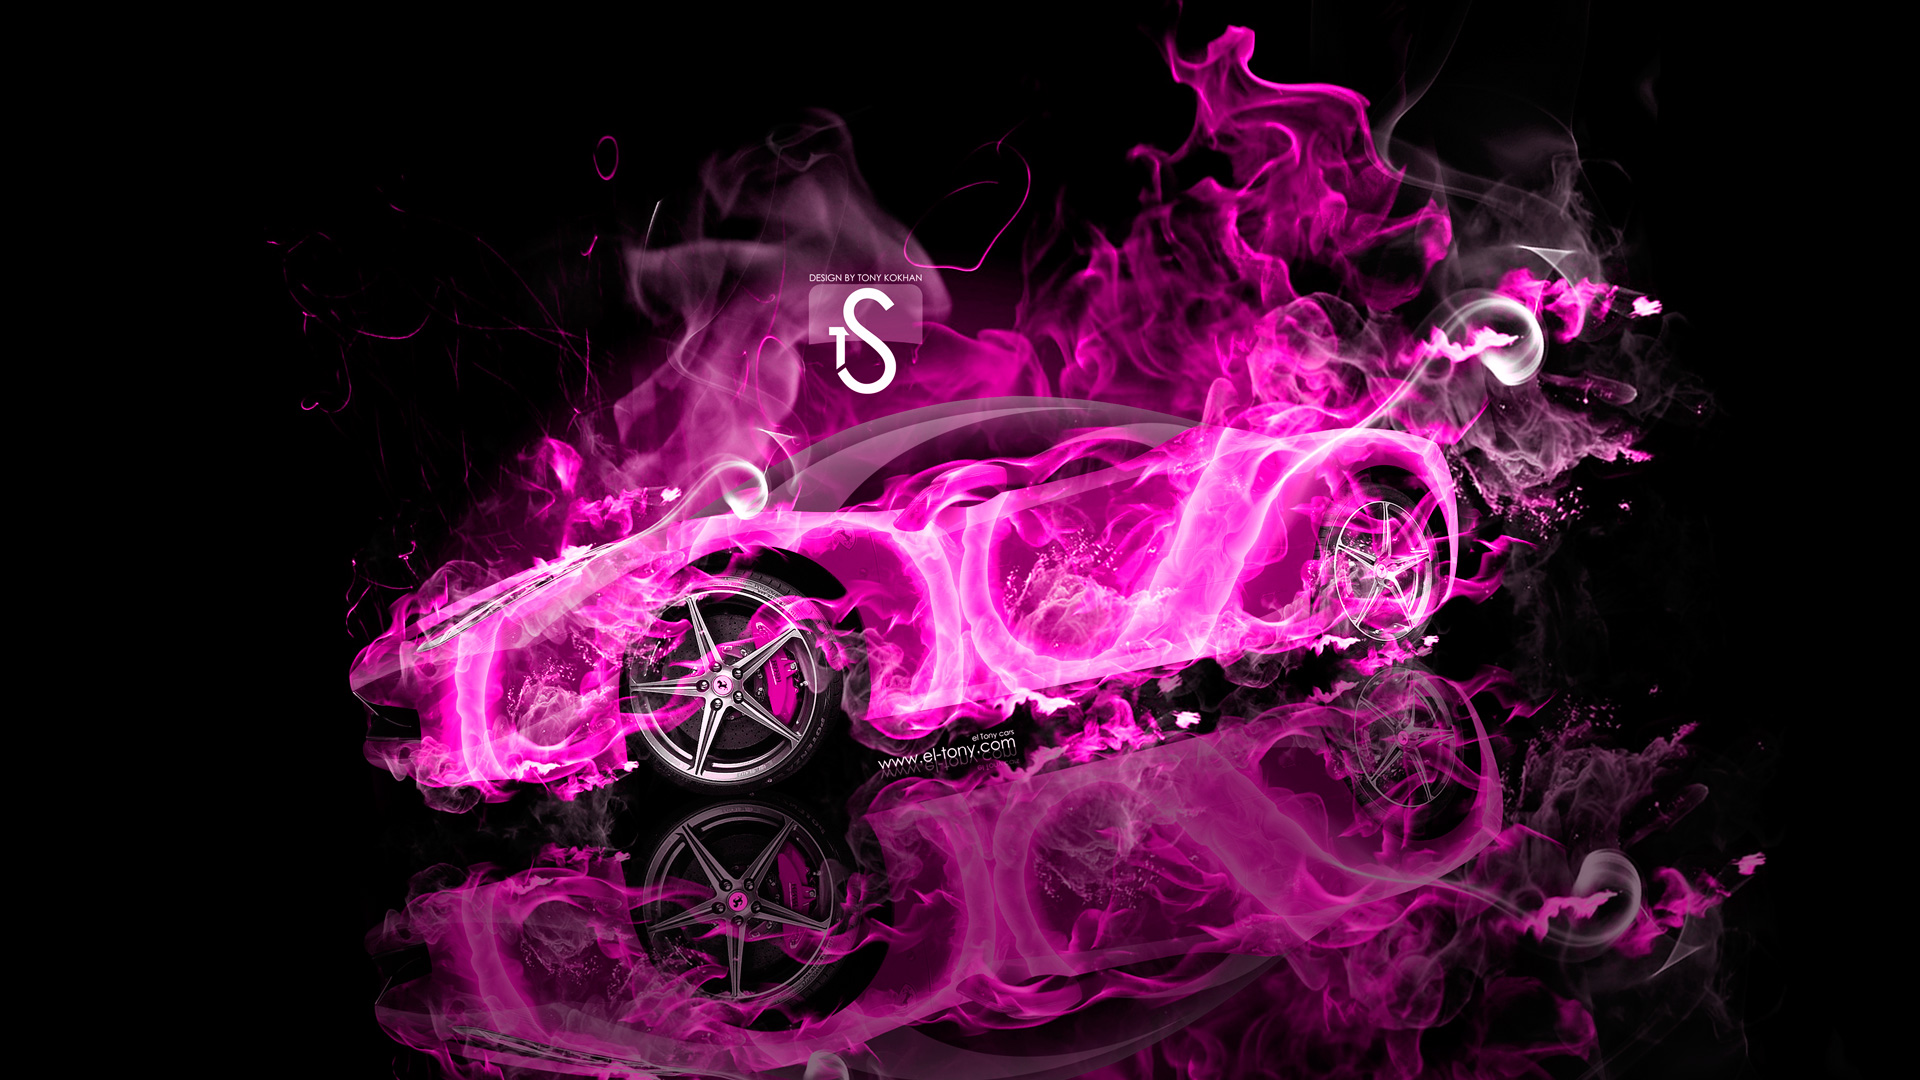 ... Ferrari Italia Pink Fire Abstract Car 2013 HD